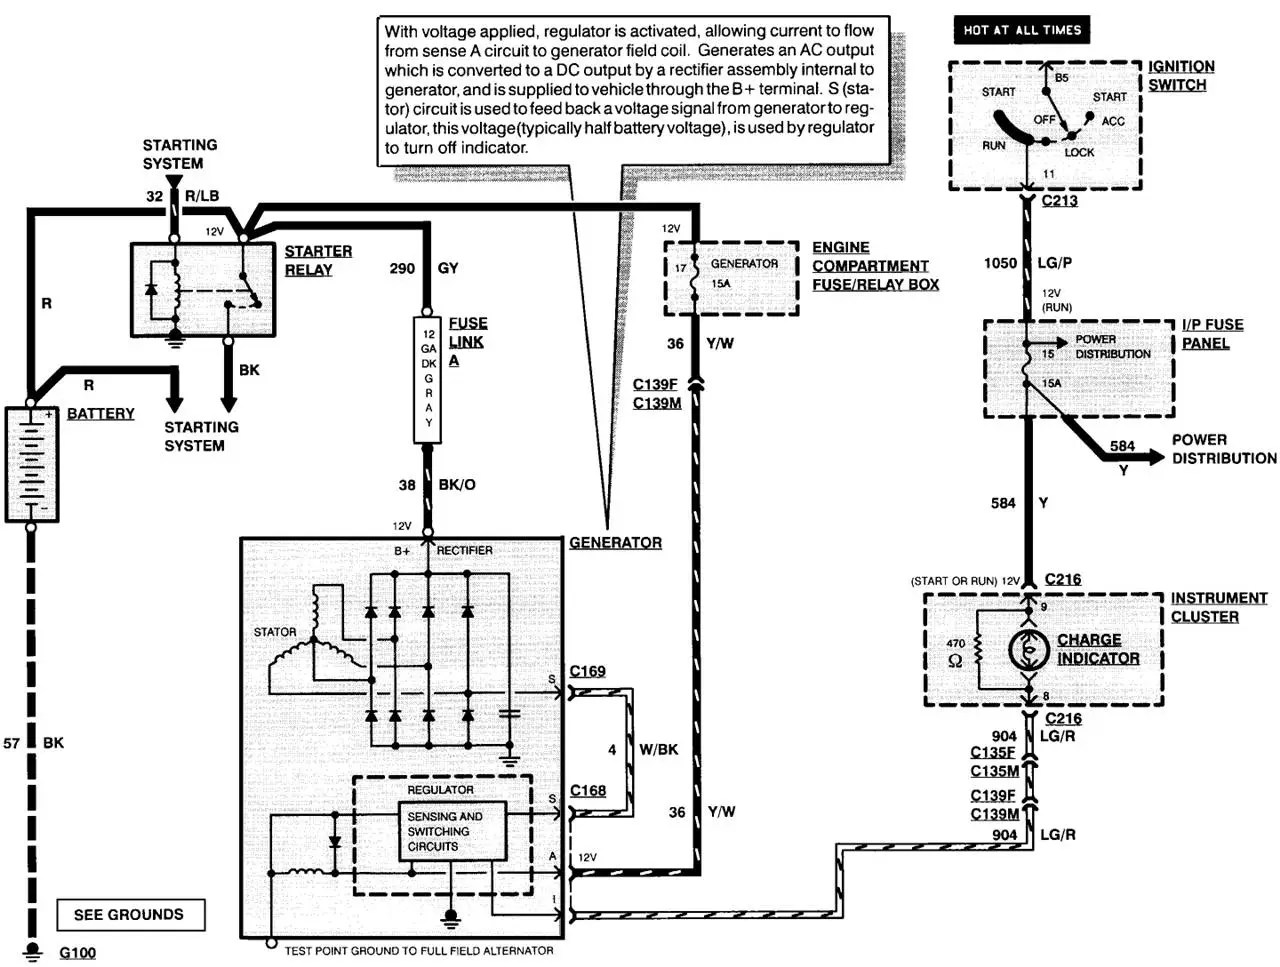 hight resolution of 89 ford alternator diagram wiring diagram database1994 f150 wiring diagram battery and alternator 16